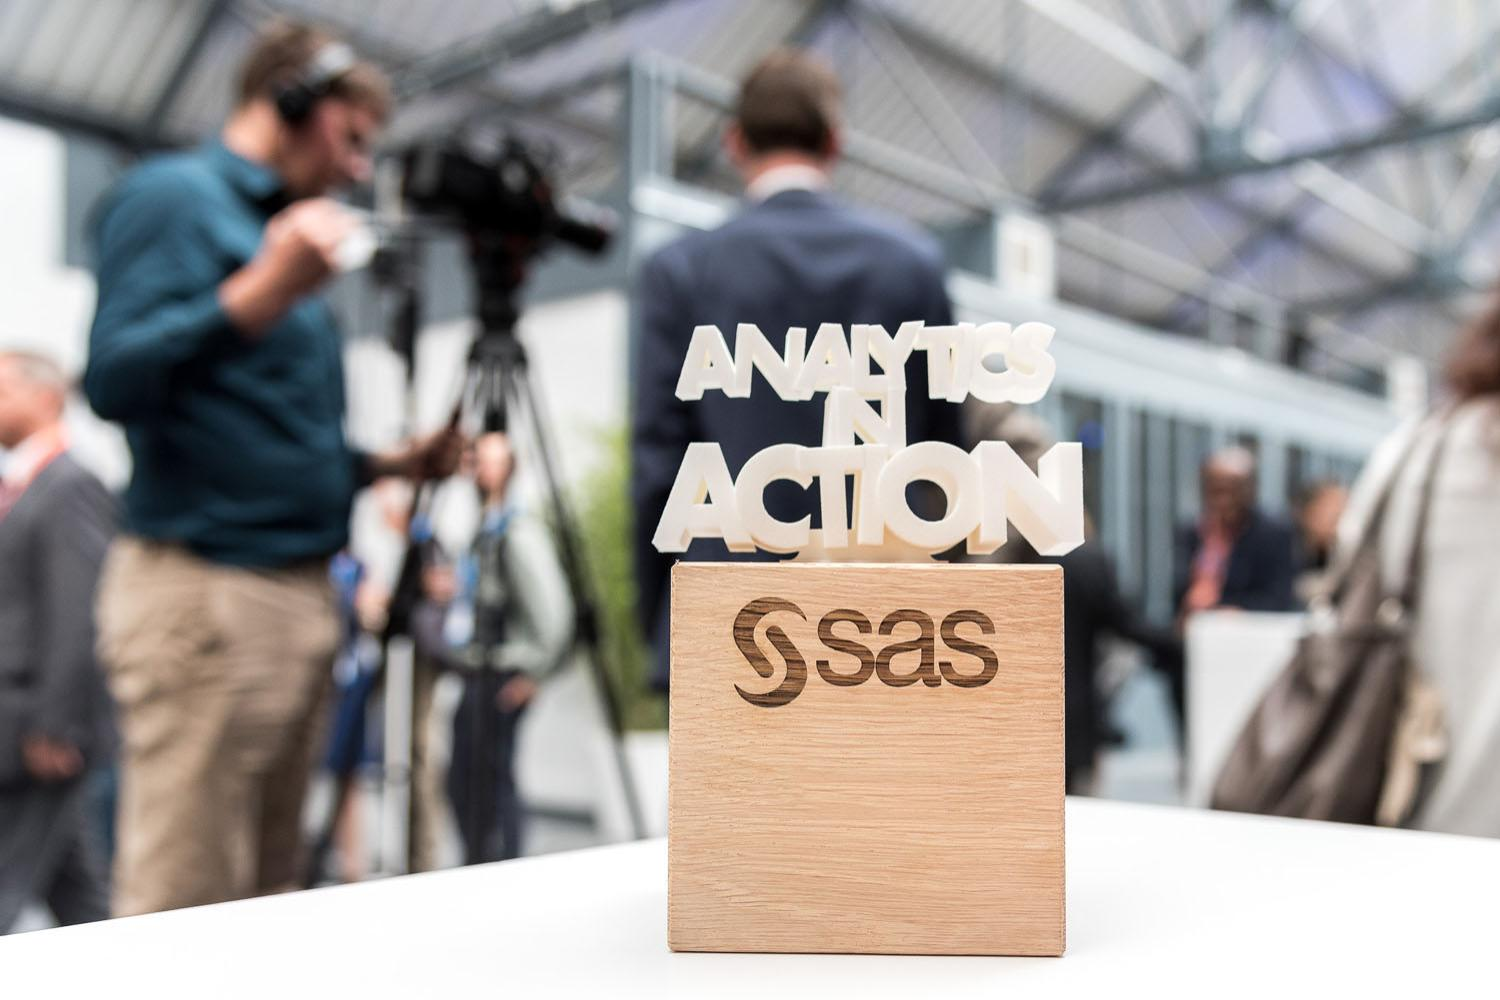 Analytics in Action Award at SAS Forum BeLux 2017